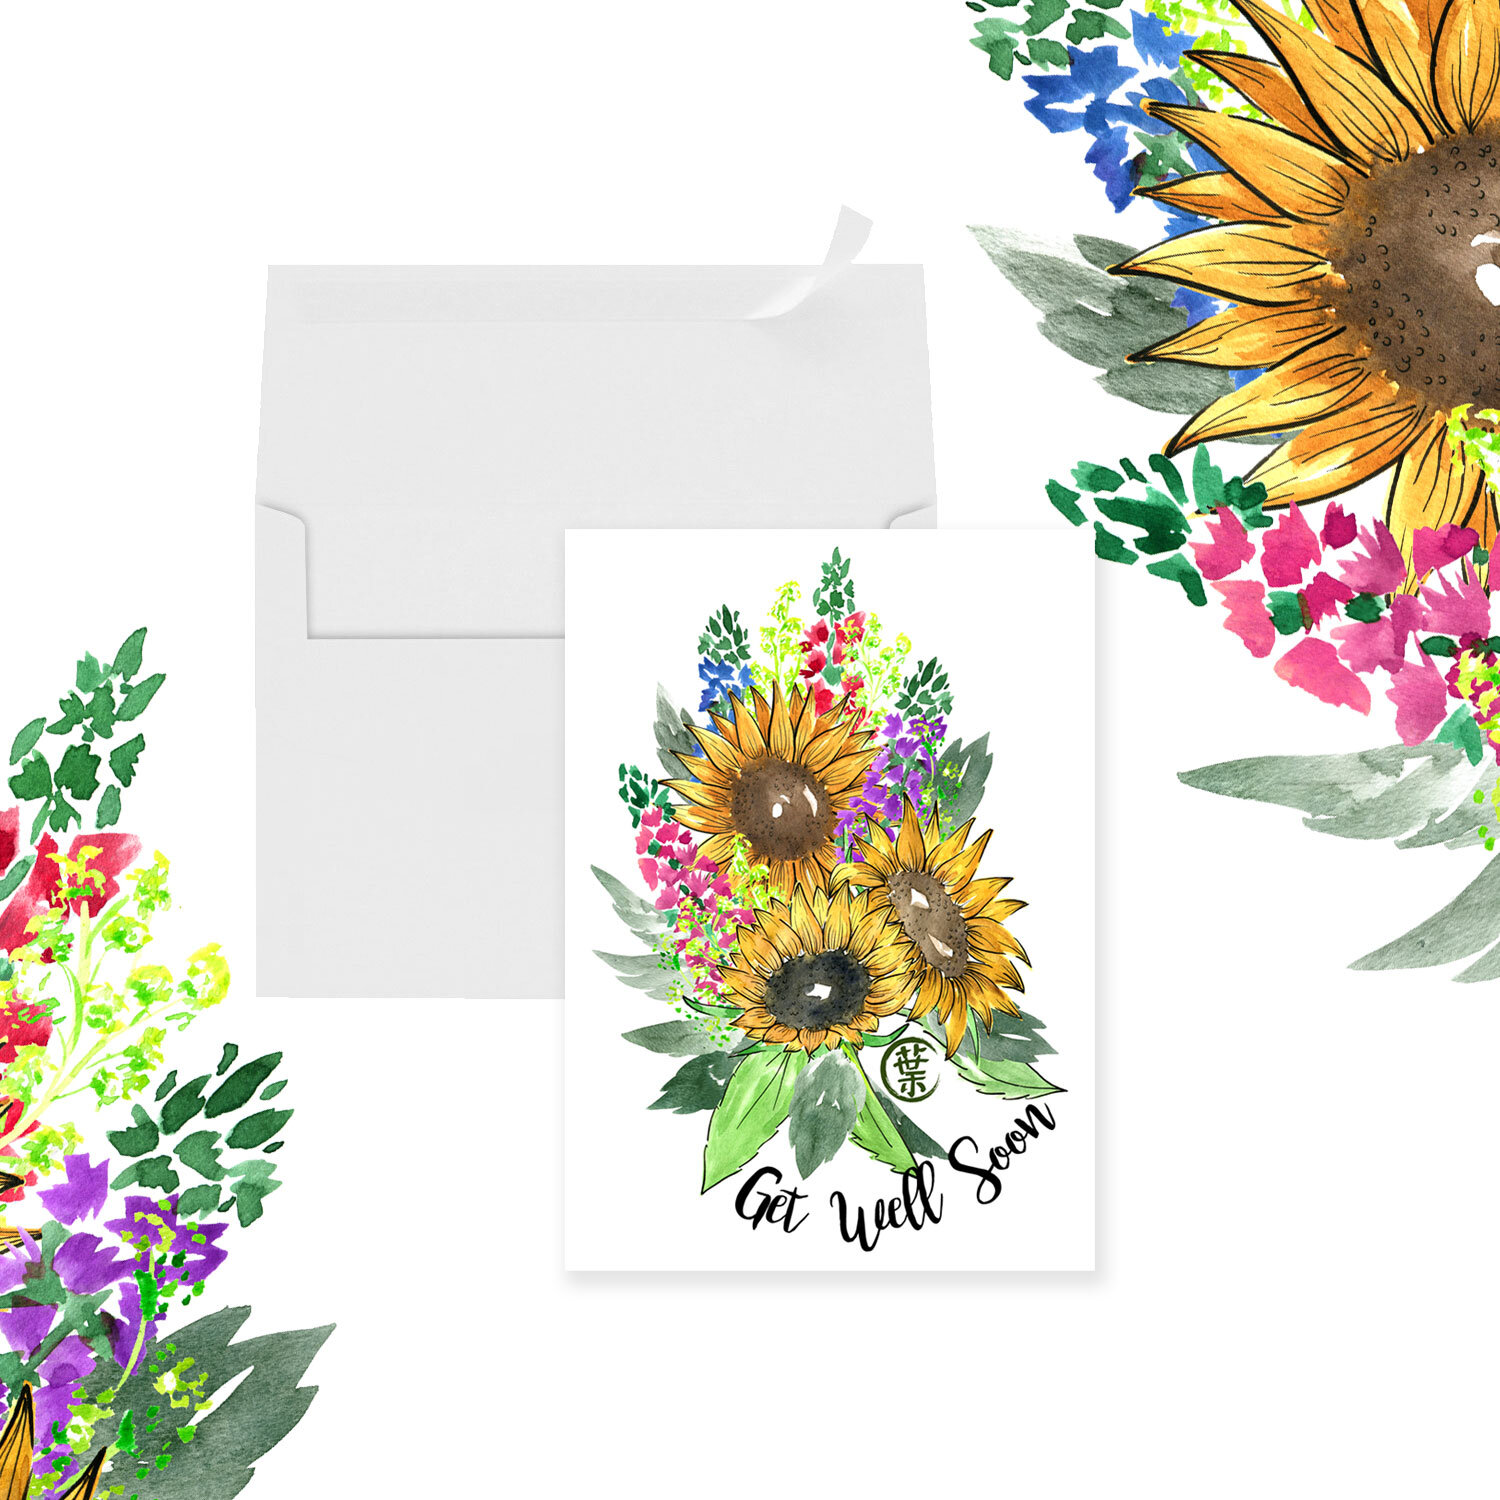 Watercolor Flower Painting Greeting Card | Sunflower